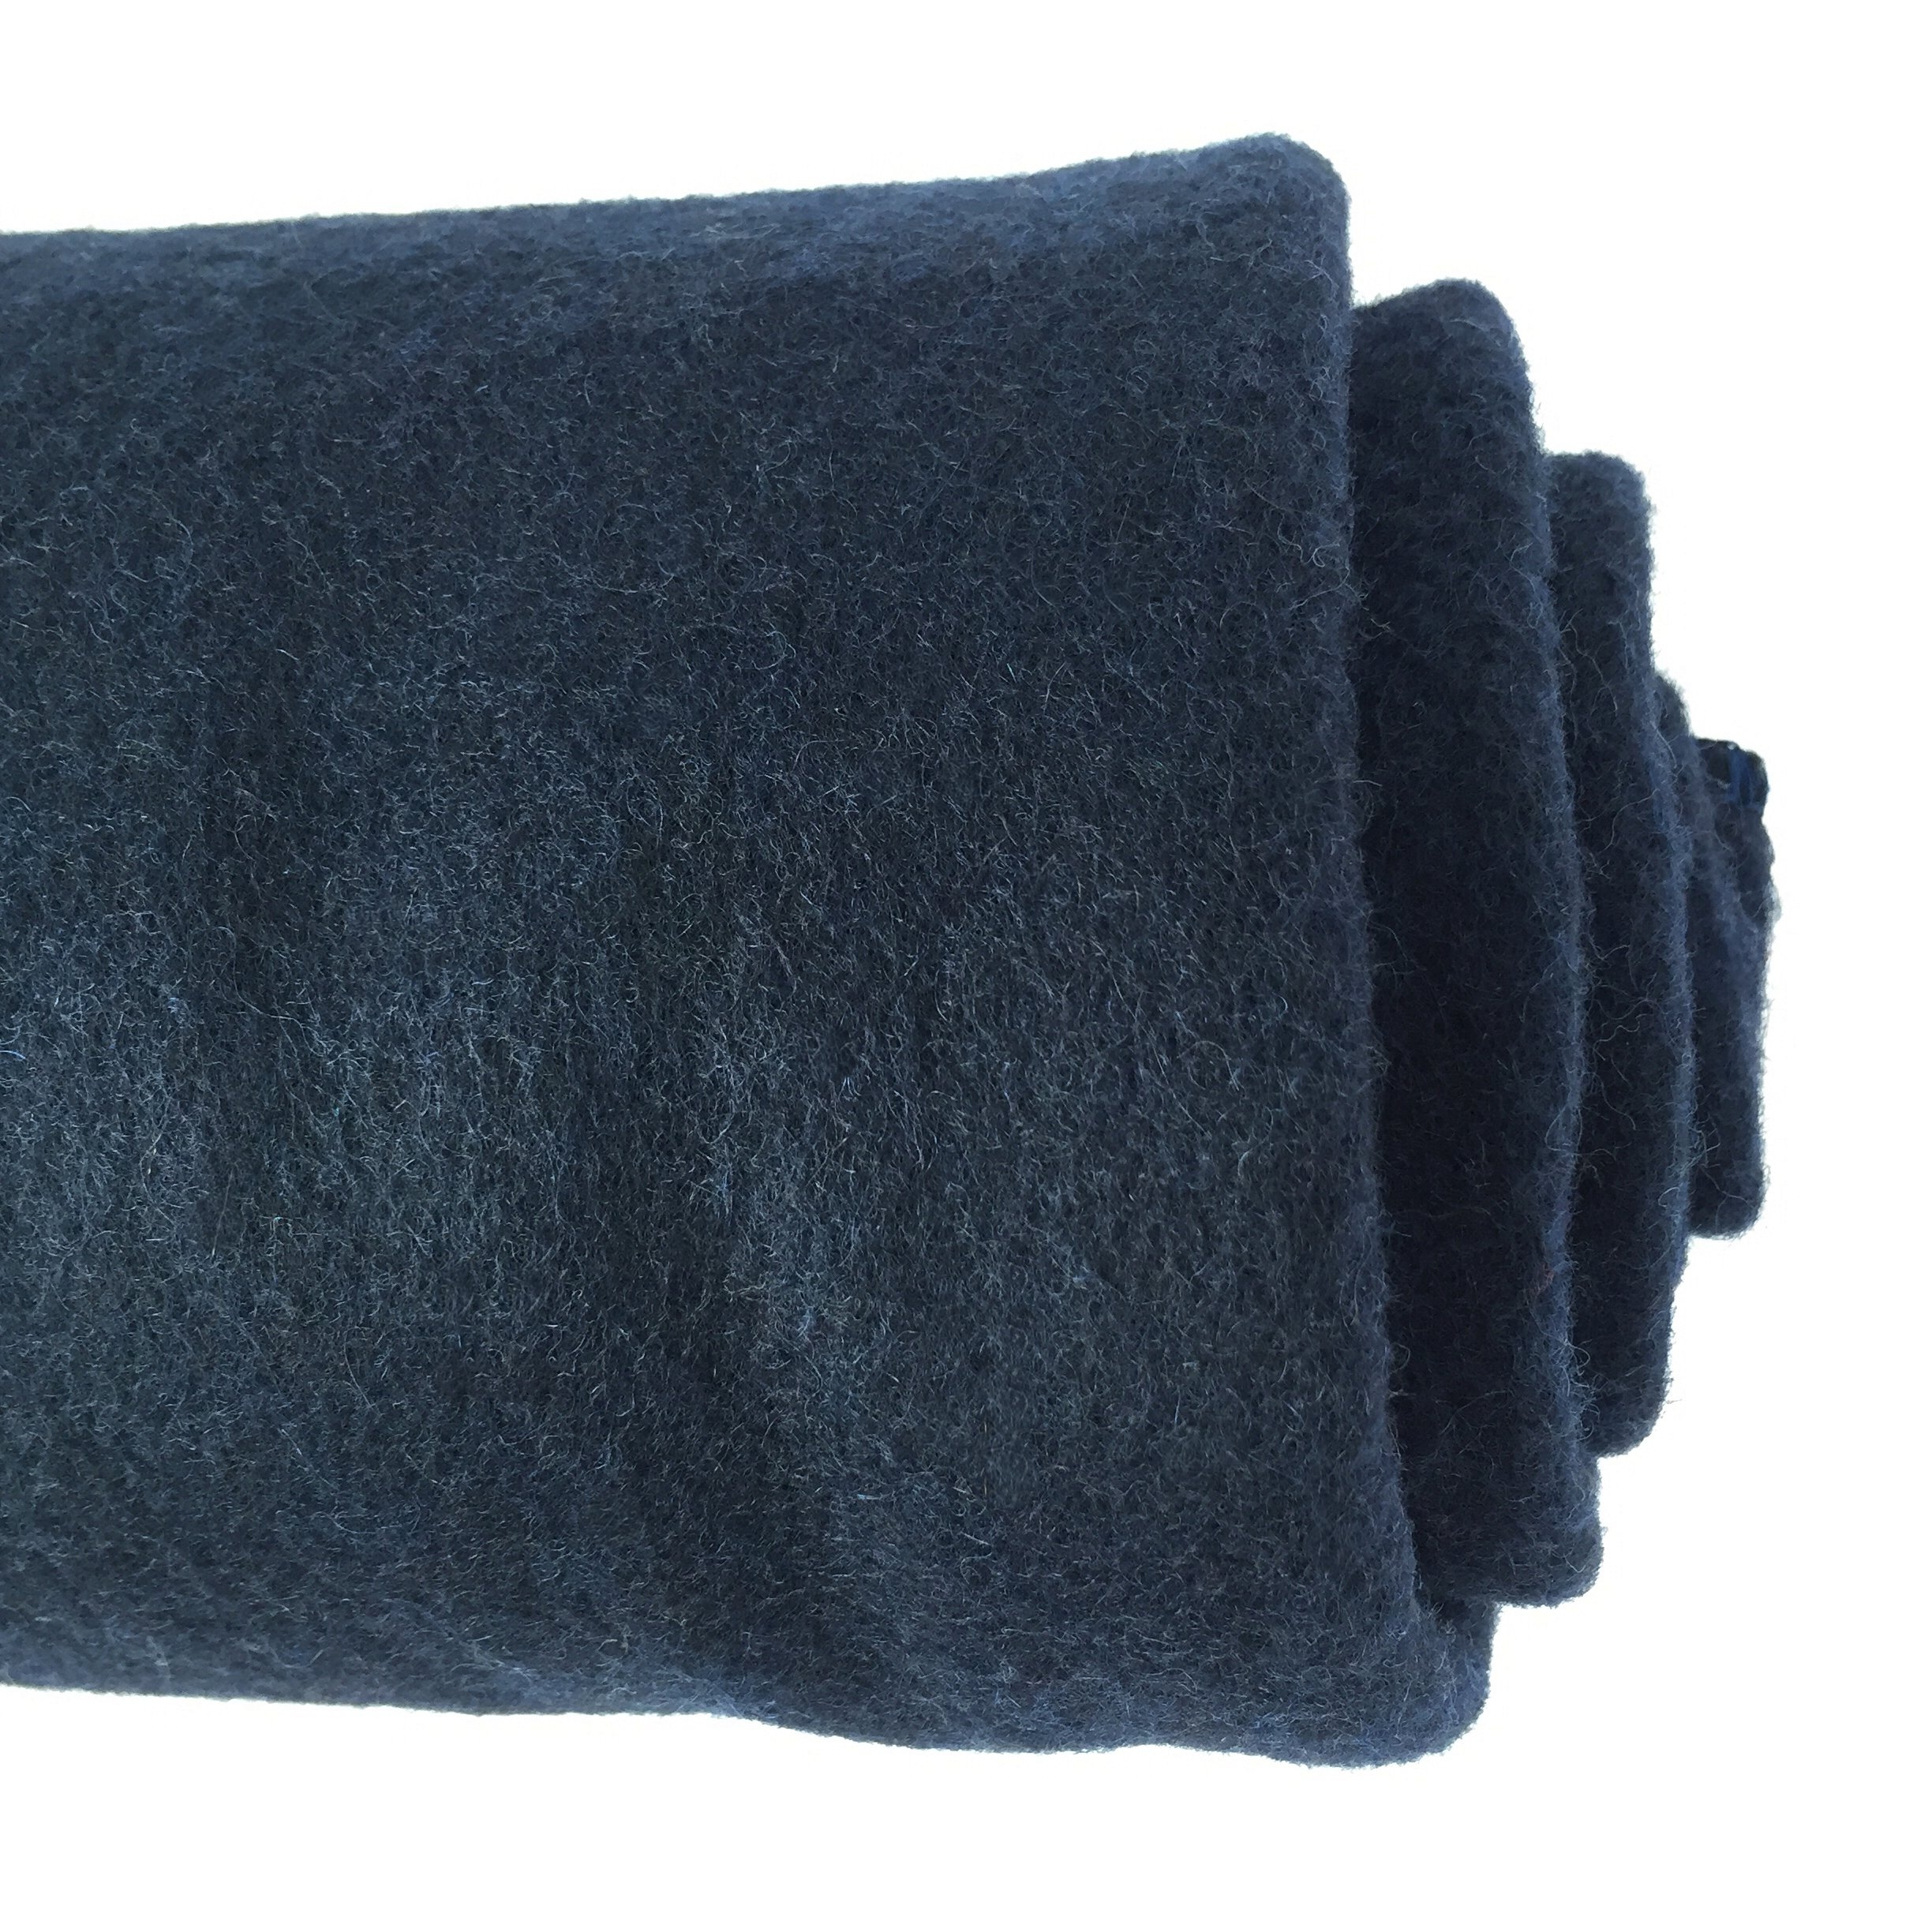 EKTOS 100% Wool Blanket, Navy Blue, Warm & Heavy 5.5 lbs, Large Washable 66''x90'' Size, Perfect for Outdoor Camping, Survival & Emergency Preparedness Use by EKTOS (Image #7)